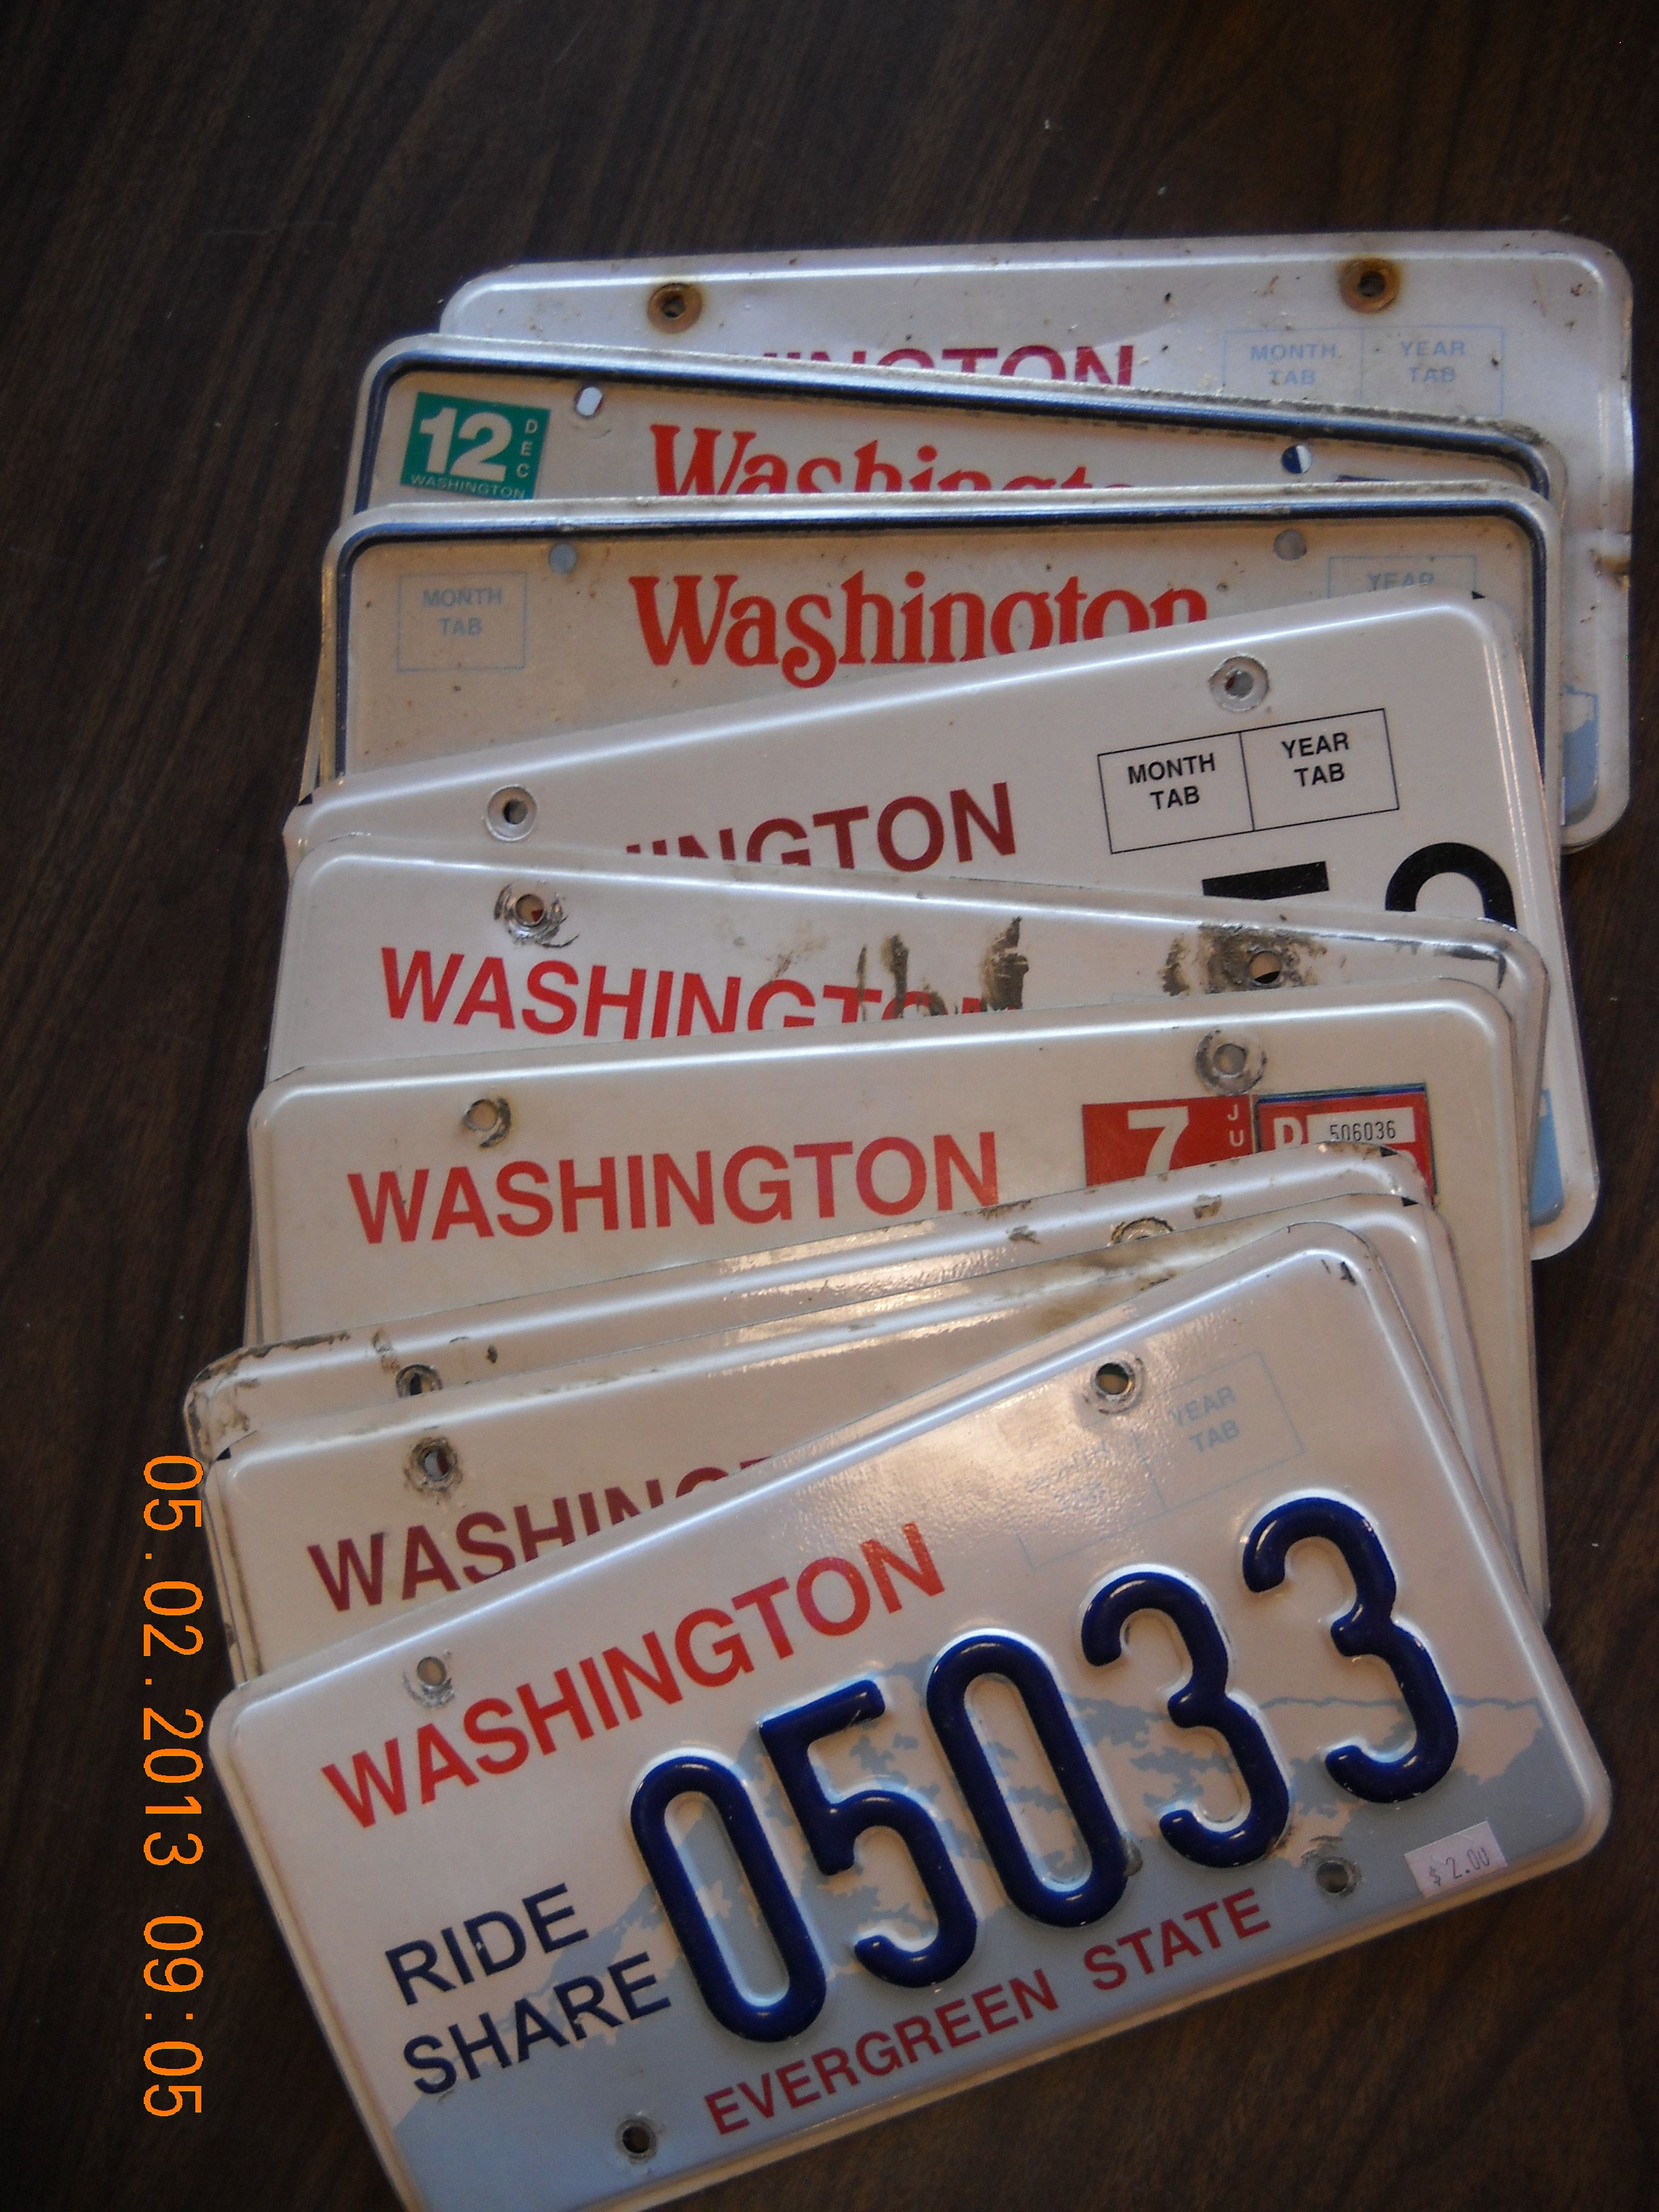 A recent history of Washington state license plates